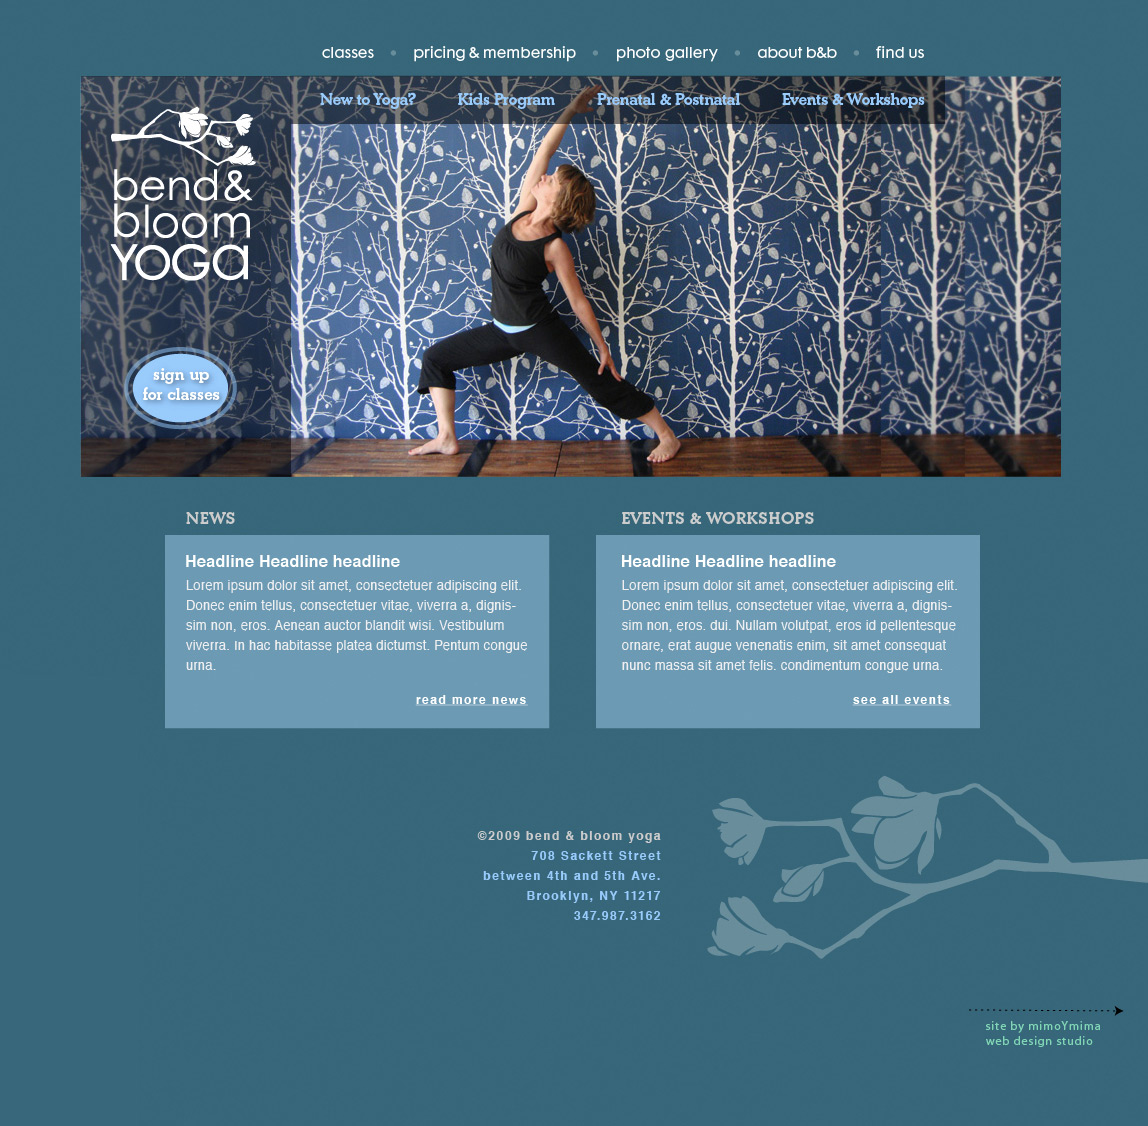 design_bend-and-bloom-yoga